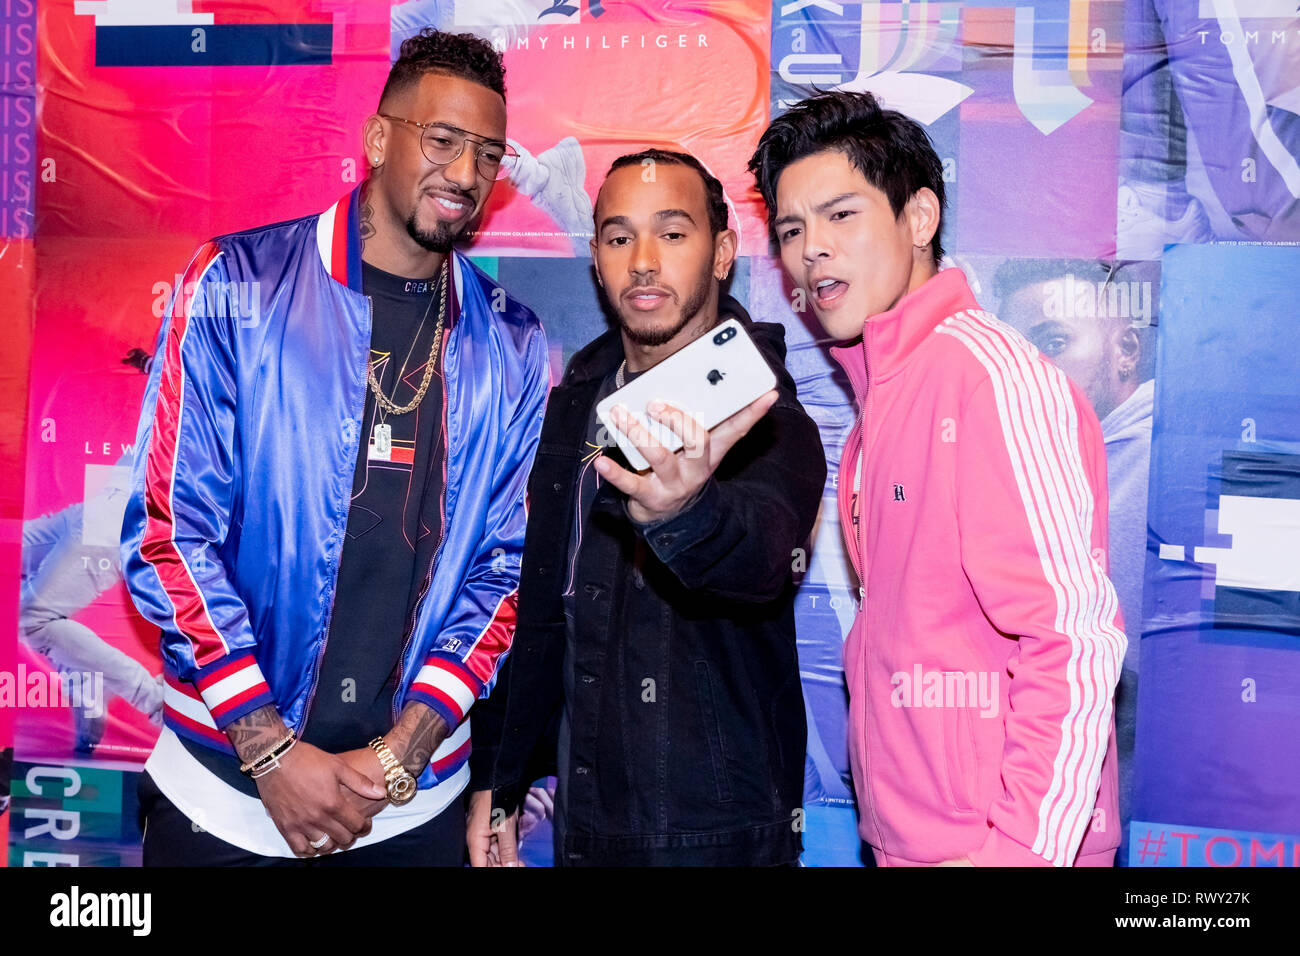 Berlin, Germany. 07th Mar, 2019. Jerome Boateng (l-r), soccer player, Lewis Hamilton, racing driver, and Jacky Heung, actor, stand in front of a photo wall at the Tommy Hilfiger CREATExUNITY event and make a selfie. Credit: Christoph Soeder/dpa/Alamy Live News - Stock Image